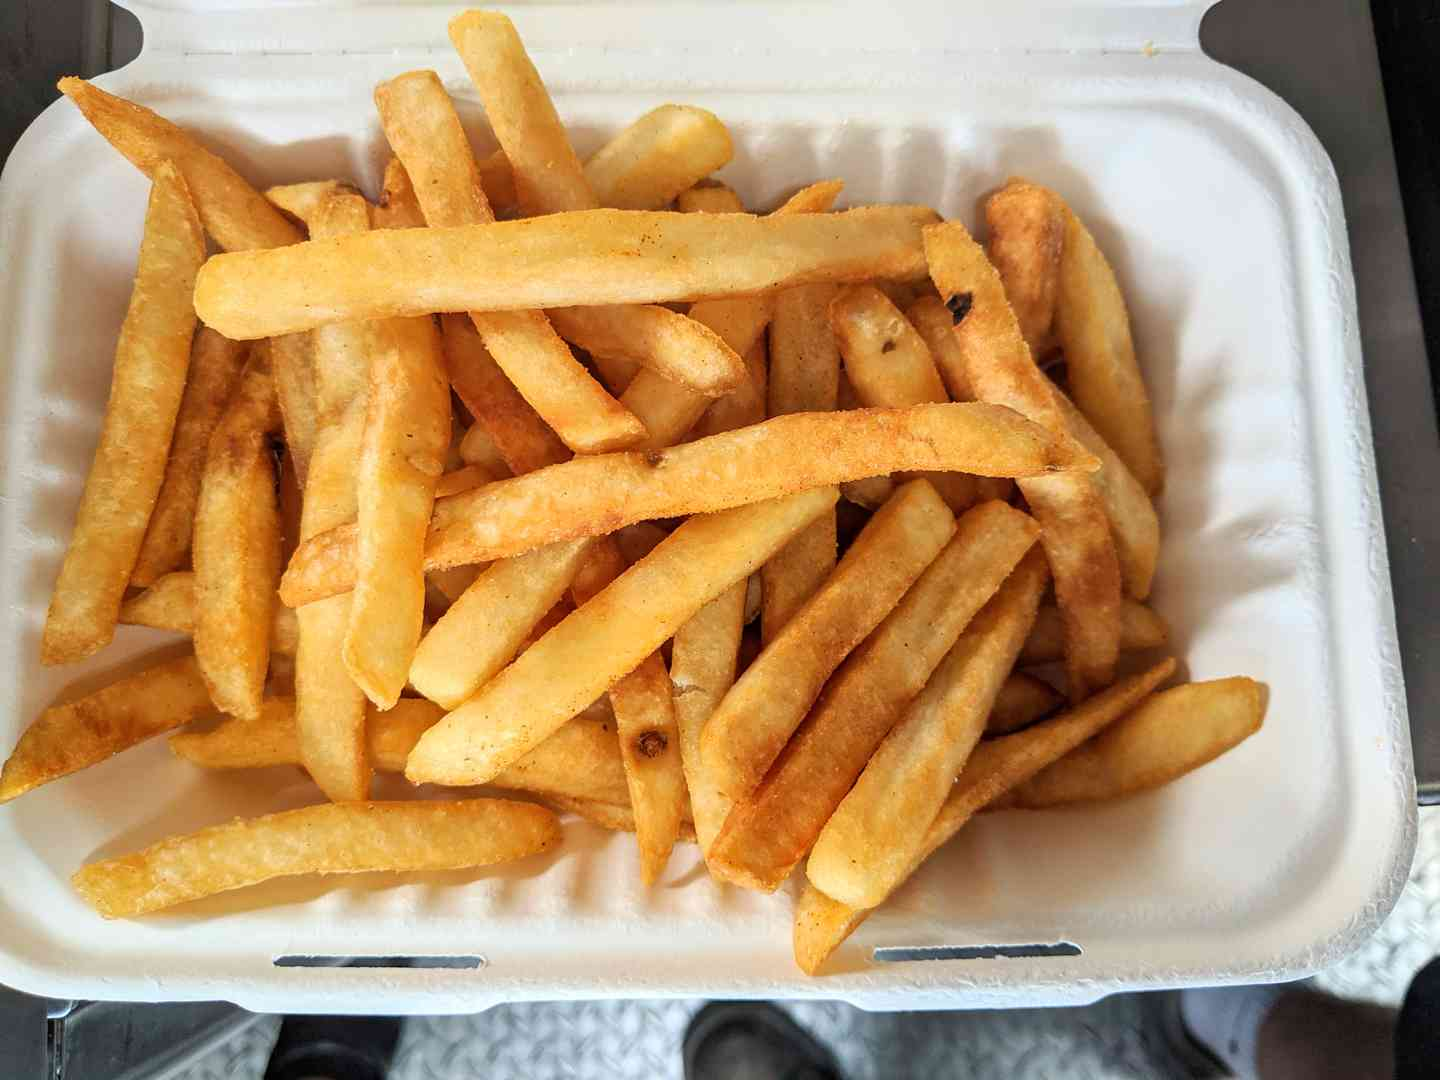 Fries and Fry Sauce